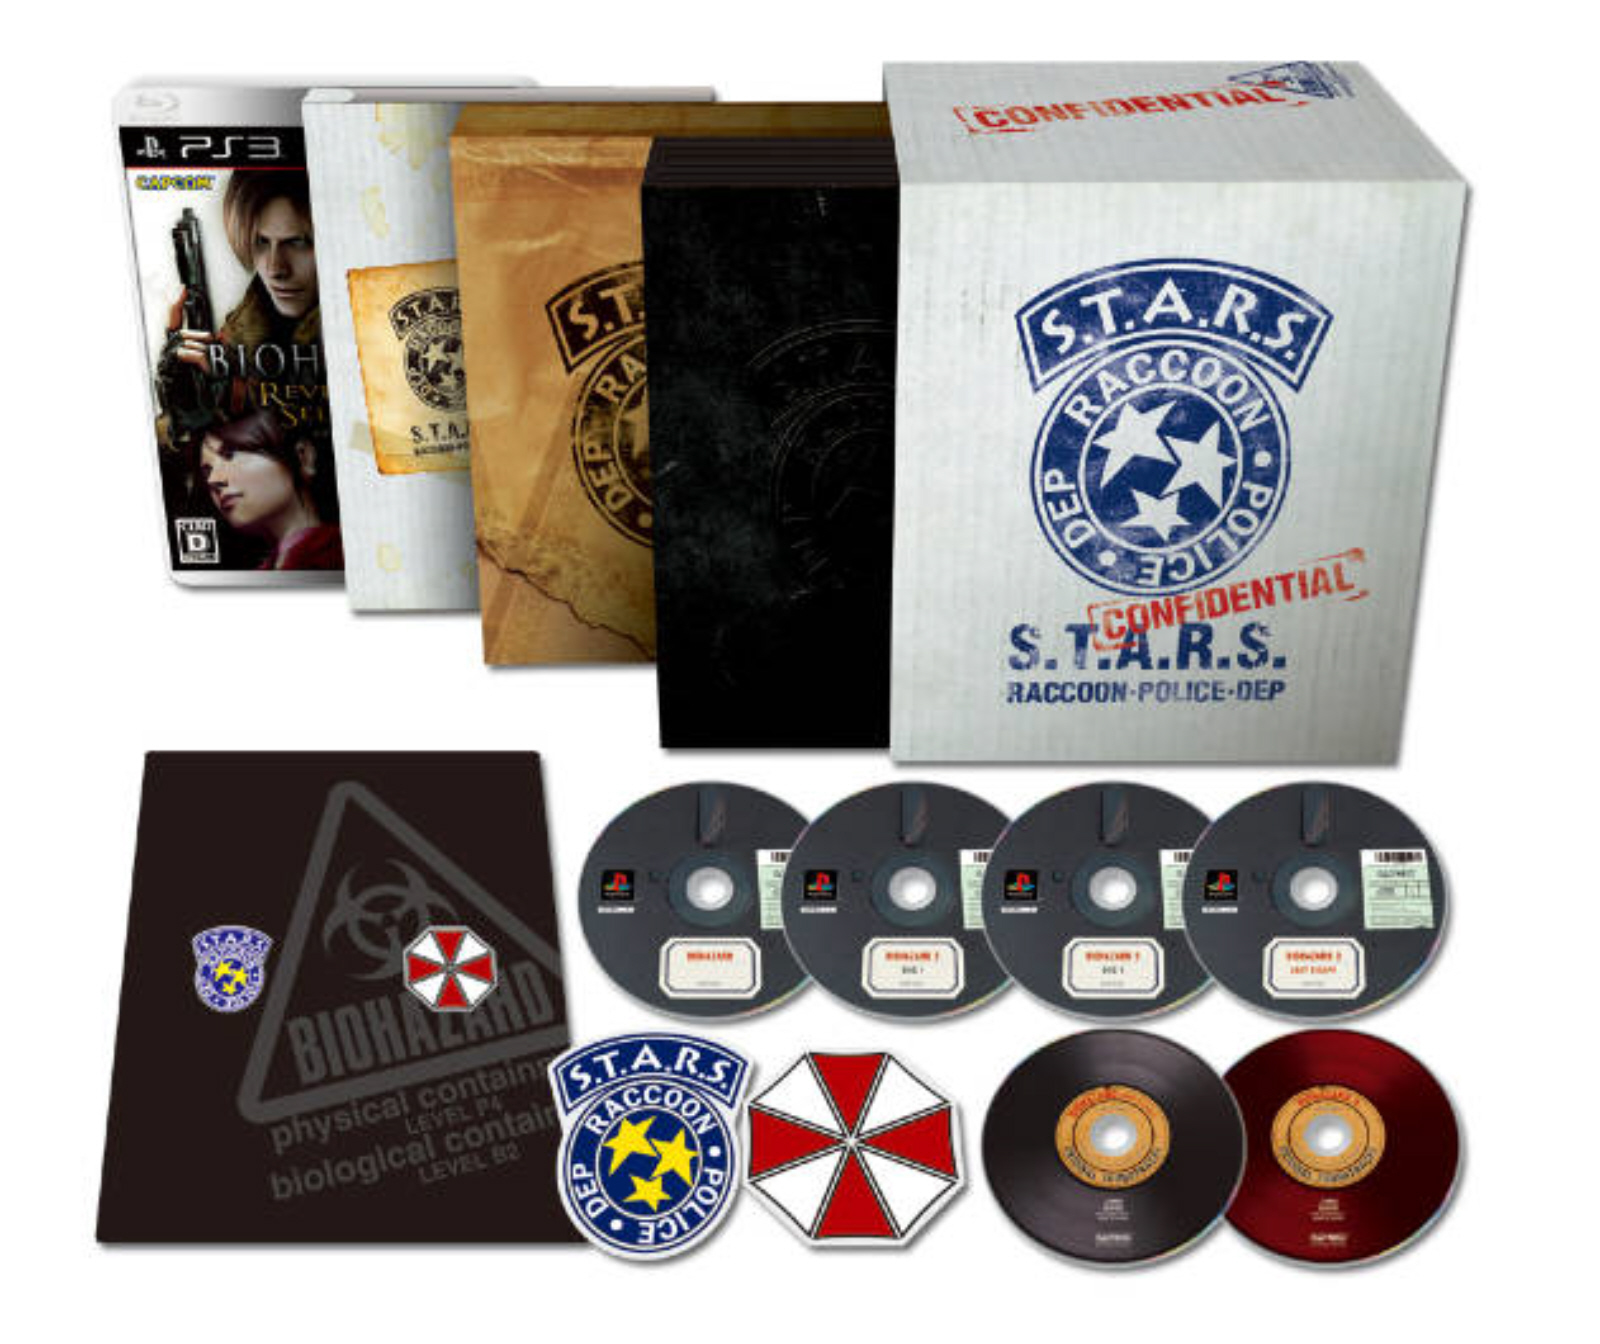 Resident Evil Collection box set in Japan (Biohazard)